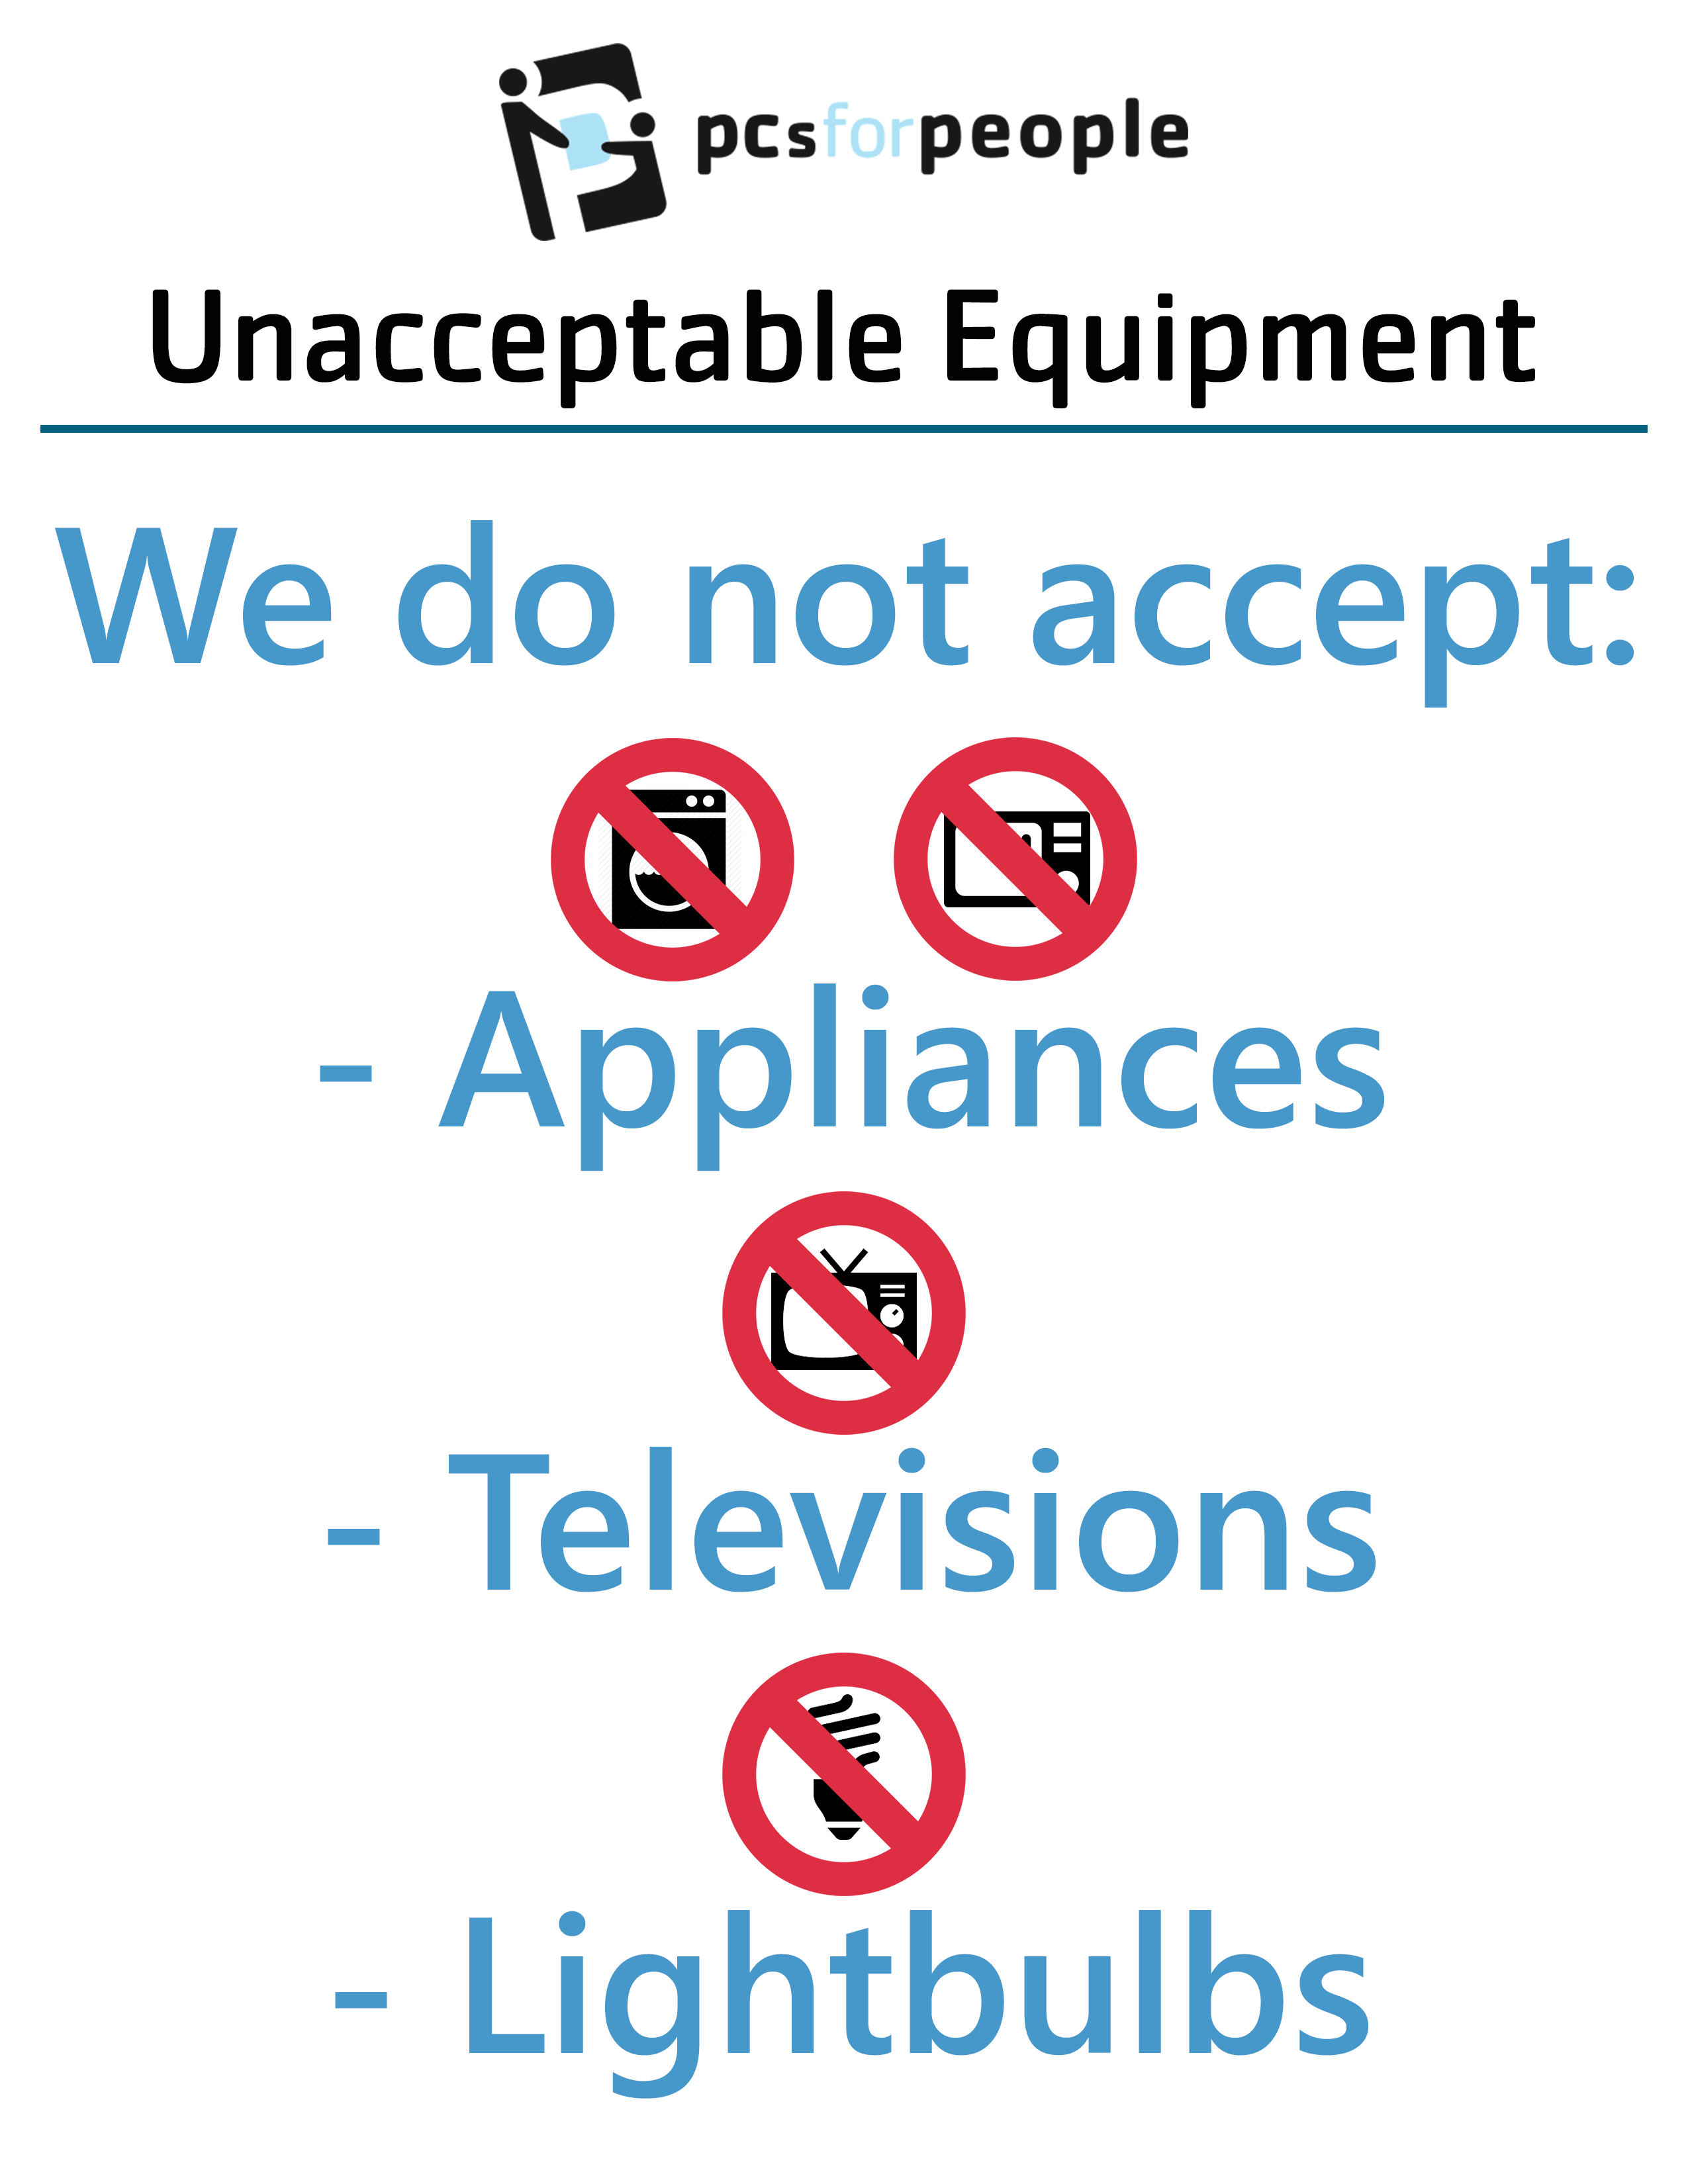 Recycling Frequently Asked Questions Pcs For People We Recycle The Following Electronics And Much More Are All Electronic Devices Accepted No Cannot Accept Home Appliances Light Bulbs